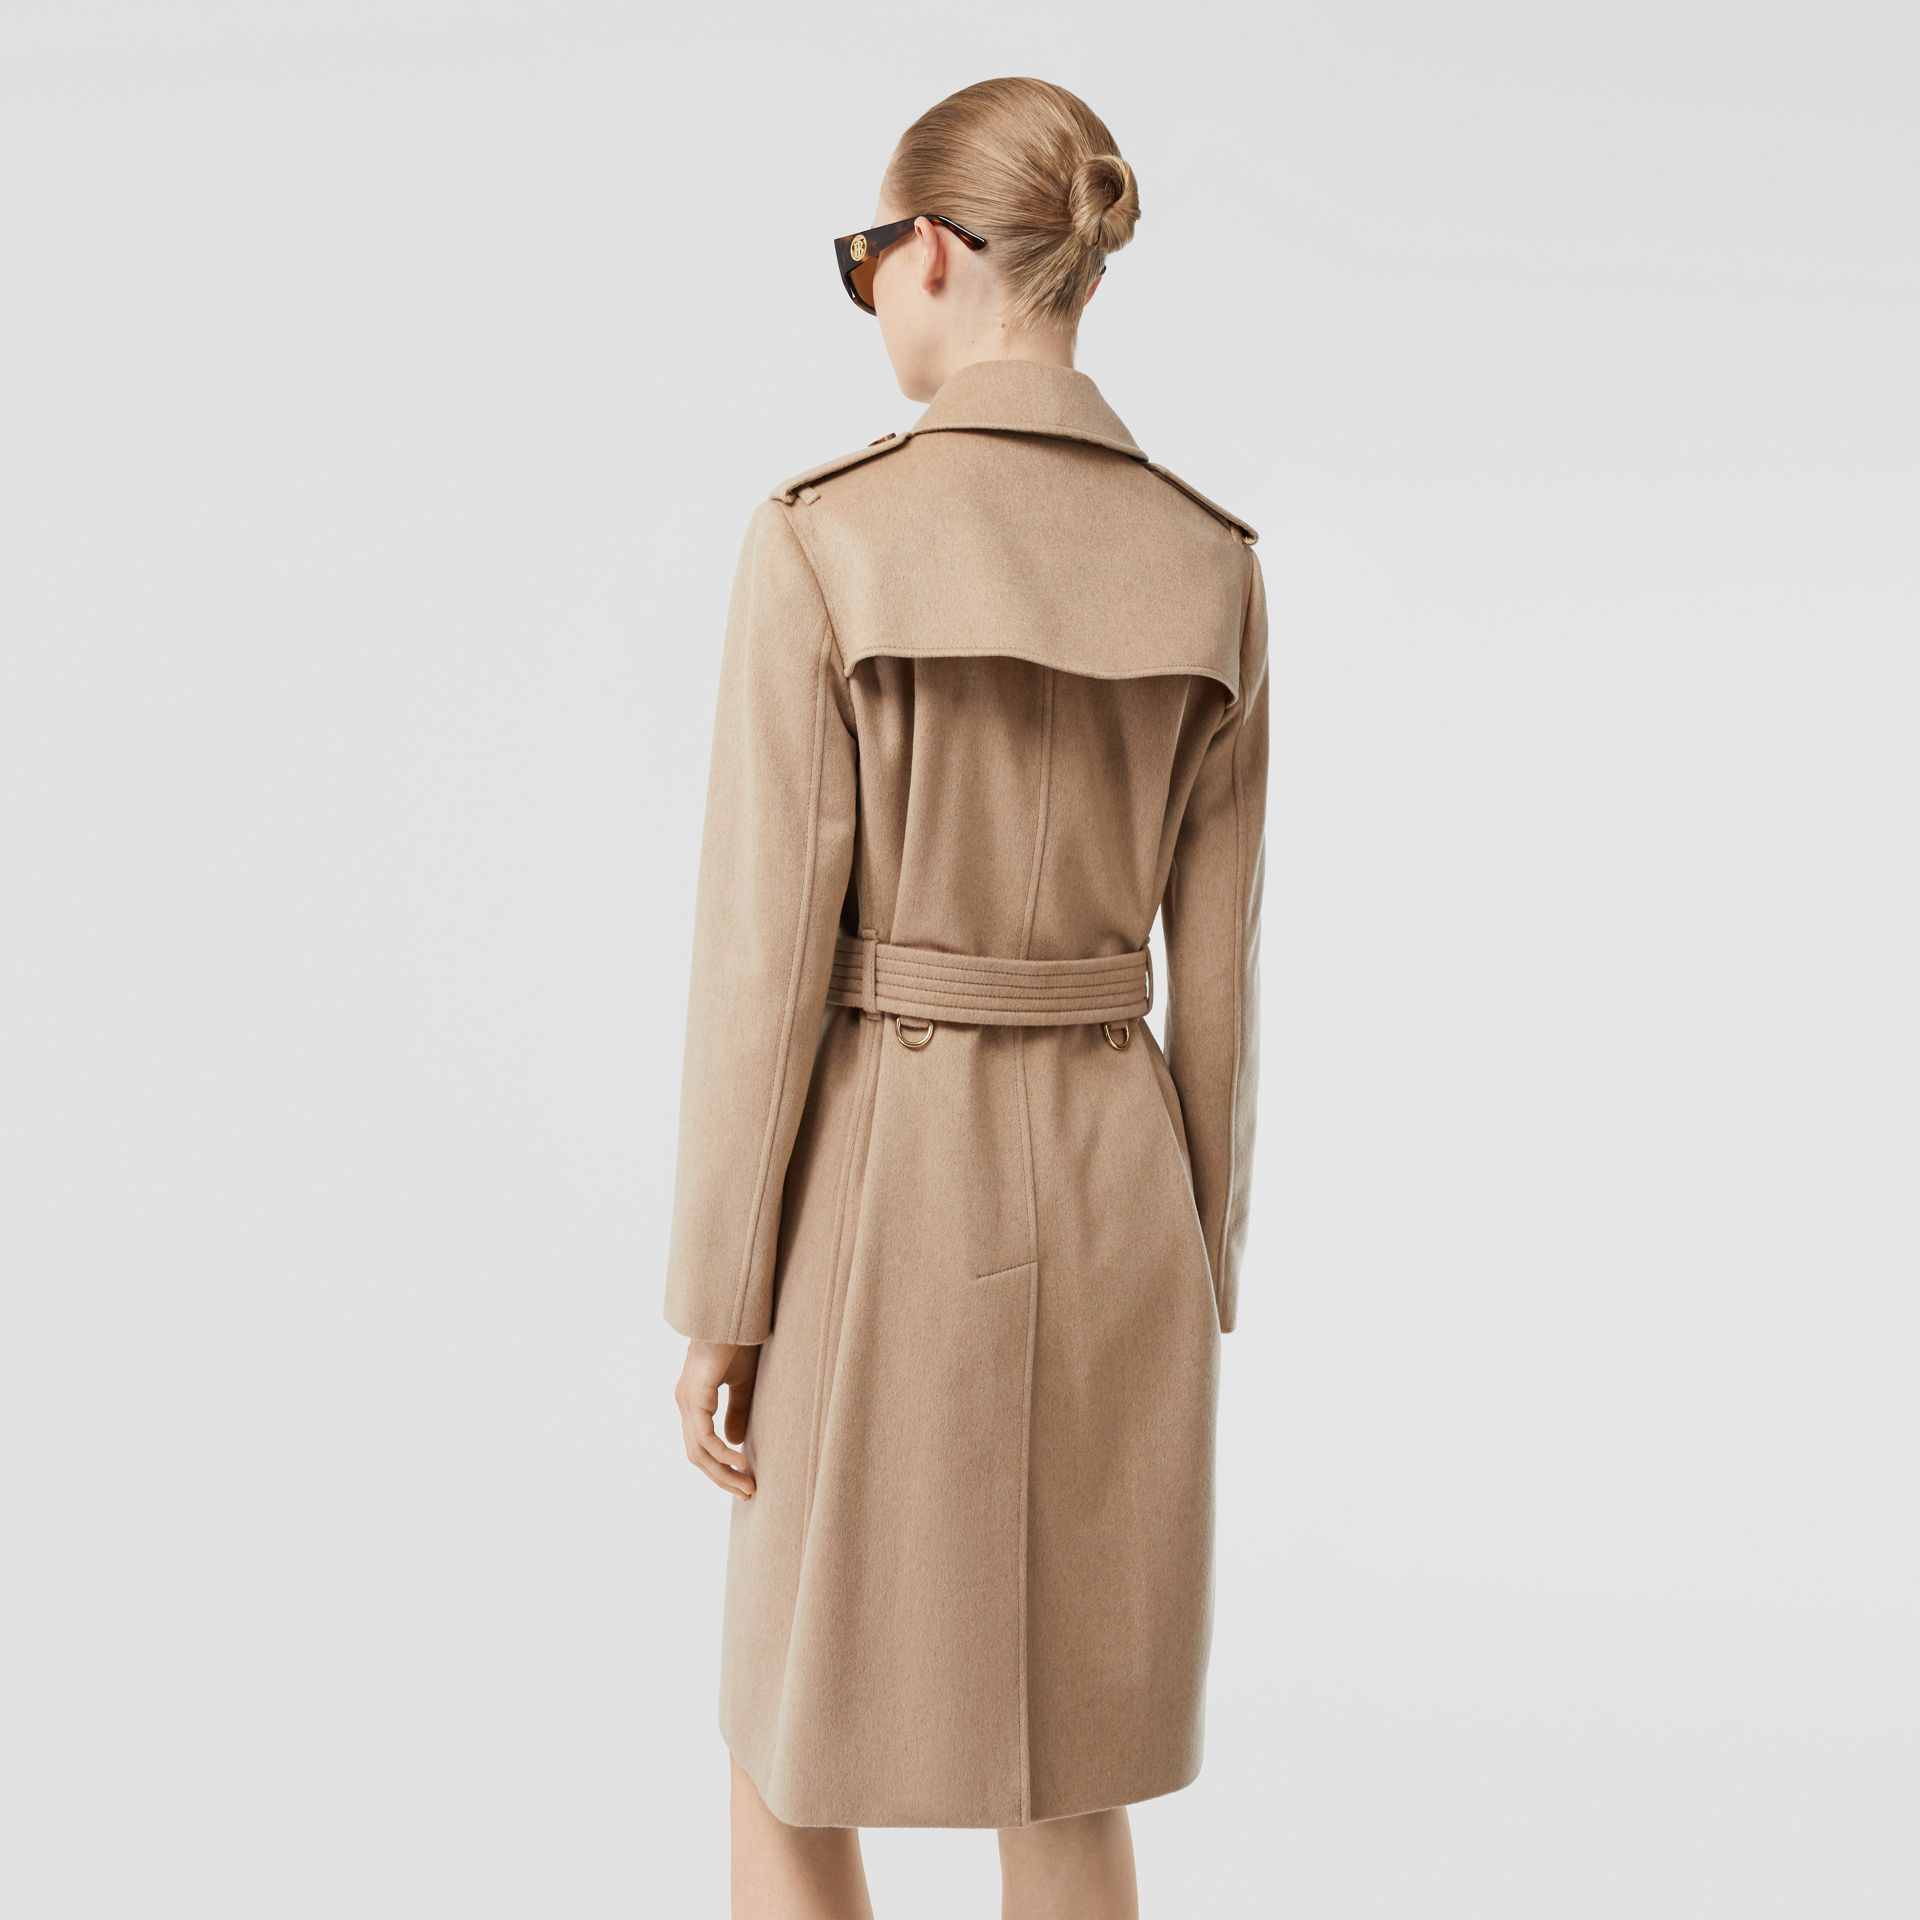 Cashmere Trench Coat in Camel - Women | Burberry Hong Kong S.A.R - gallery image 2